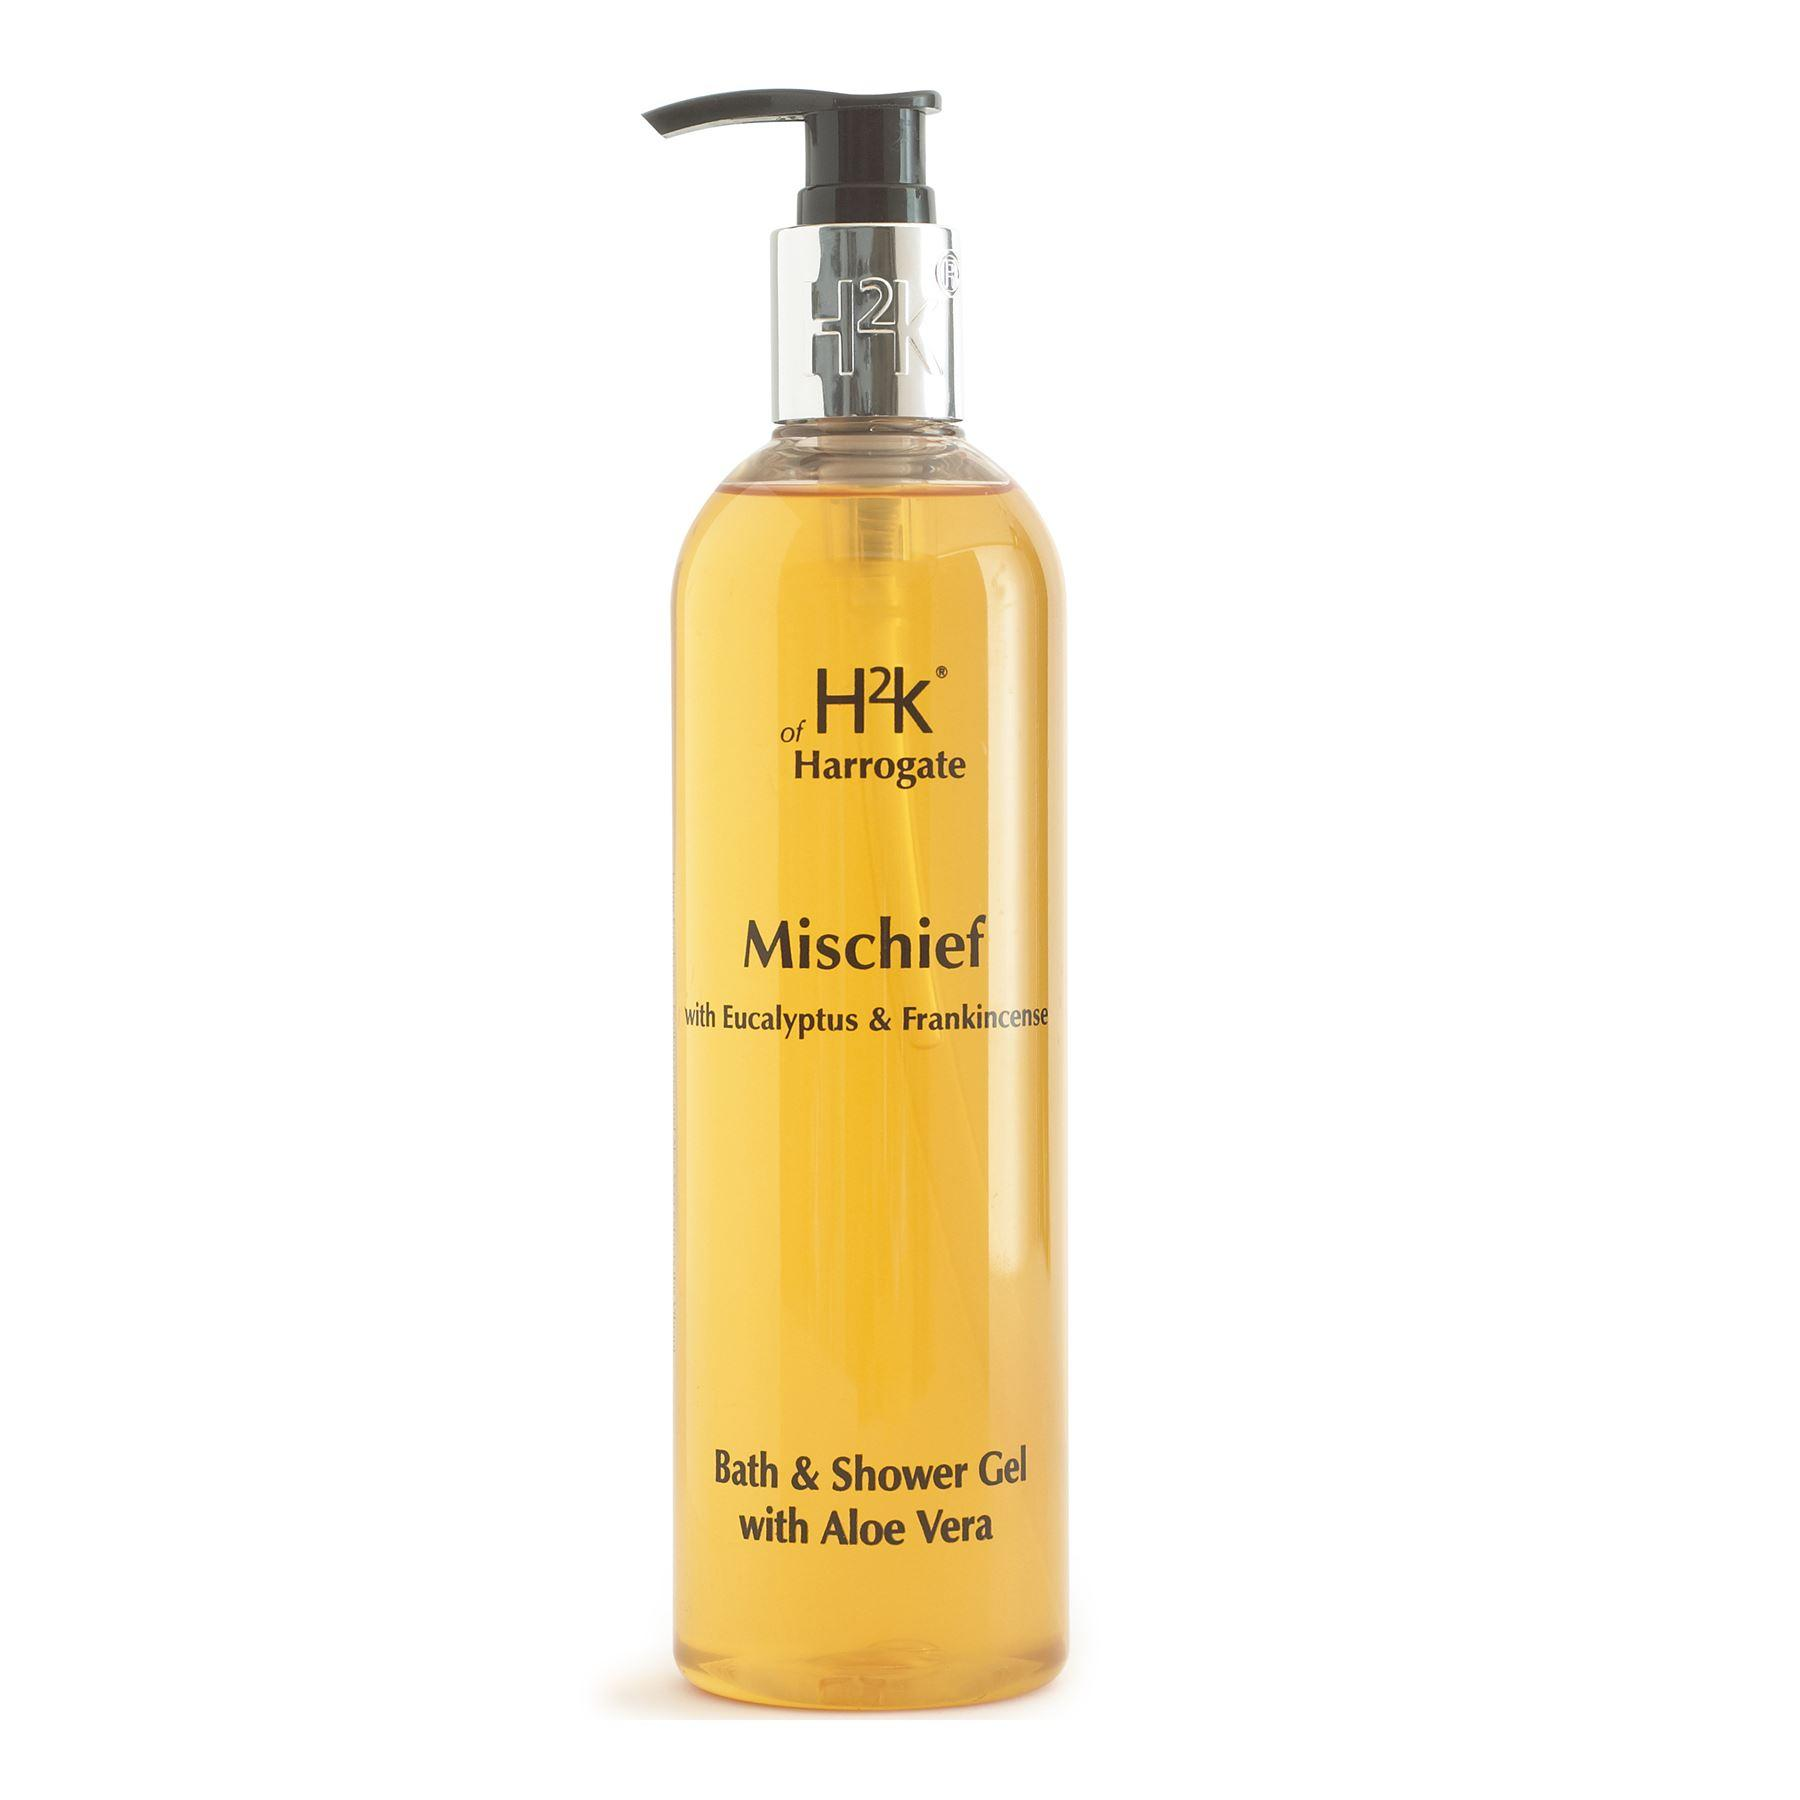 H2K Mischief Large, 400ml Bath & Shower Gel